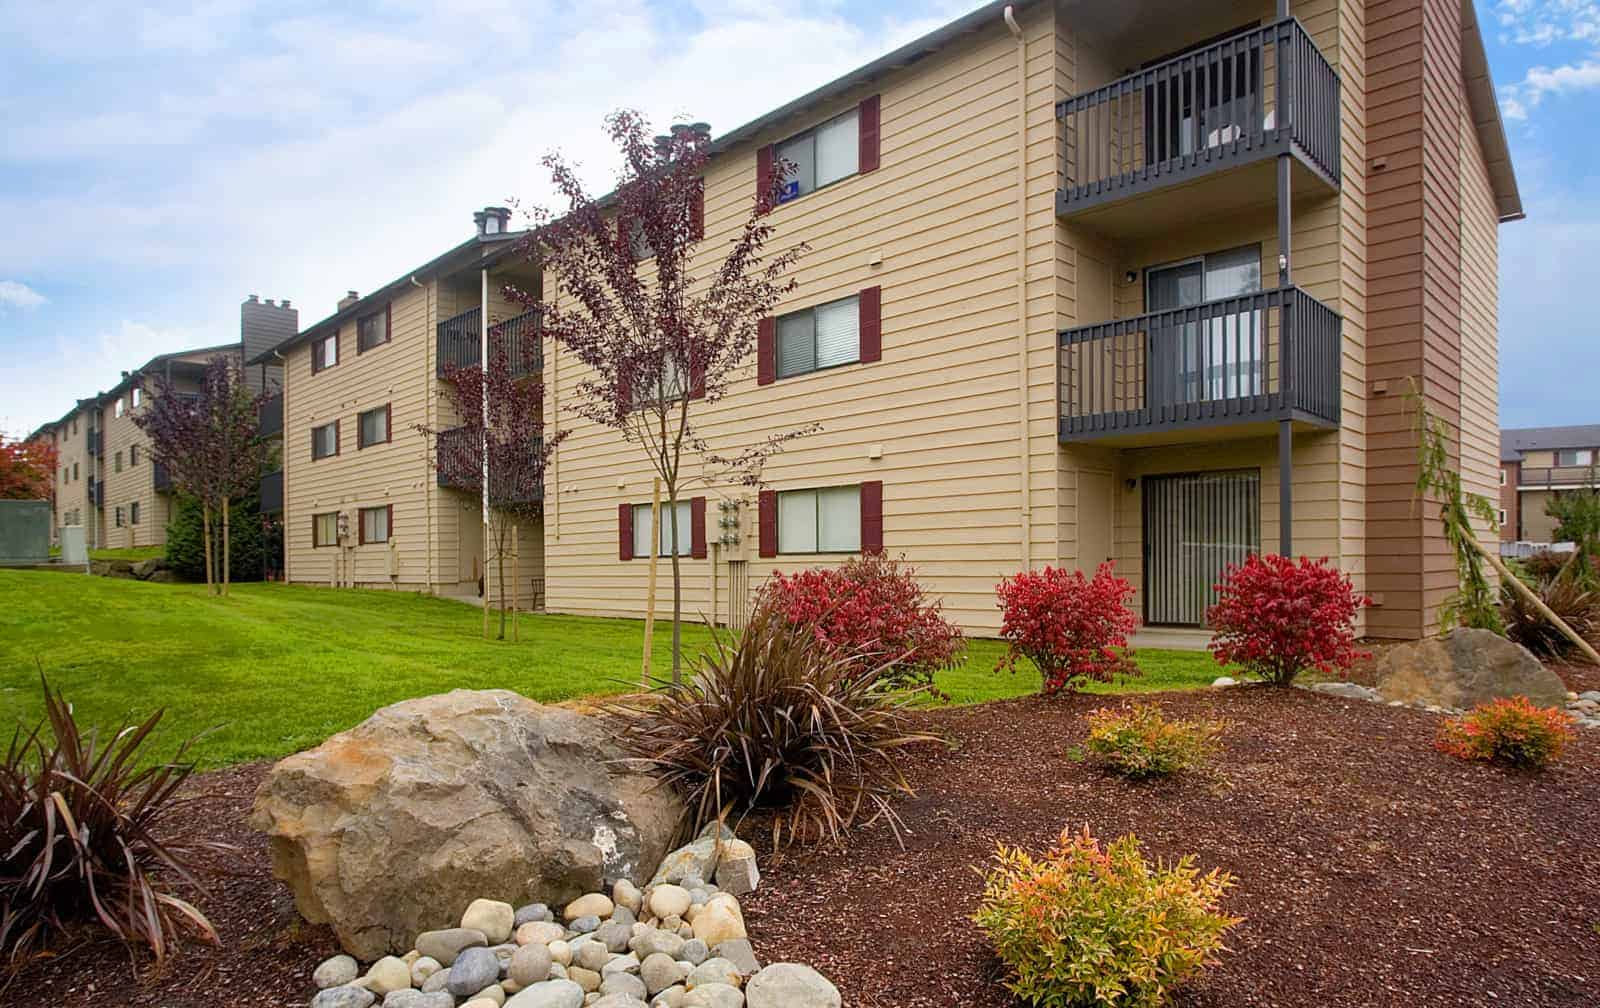 Exterior of 3 story apartment building with balconies and landscaping in the foreground.